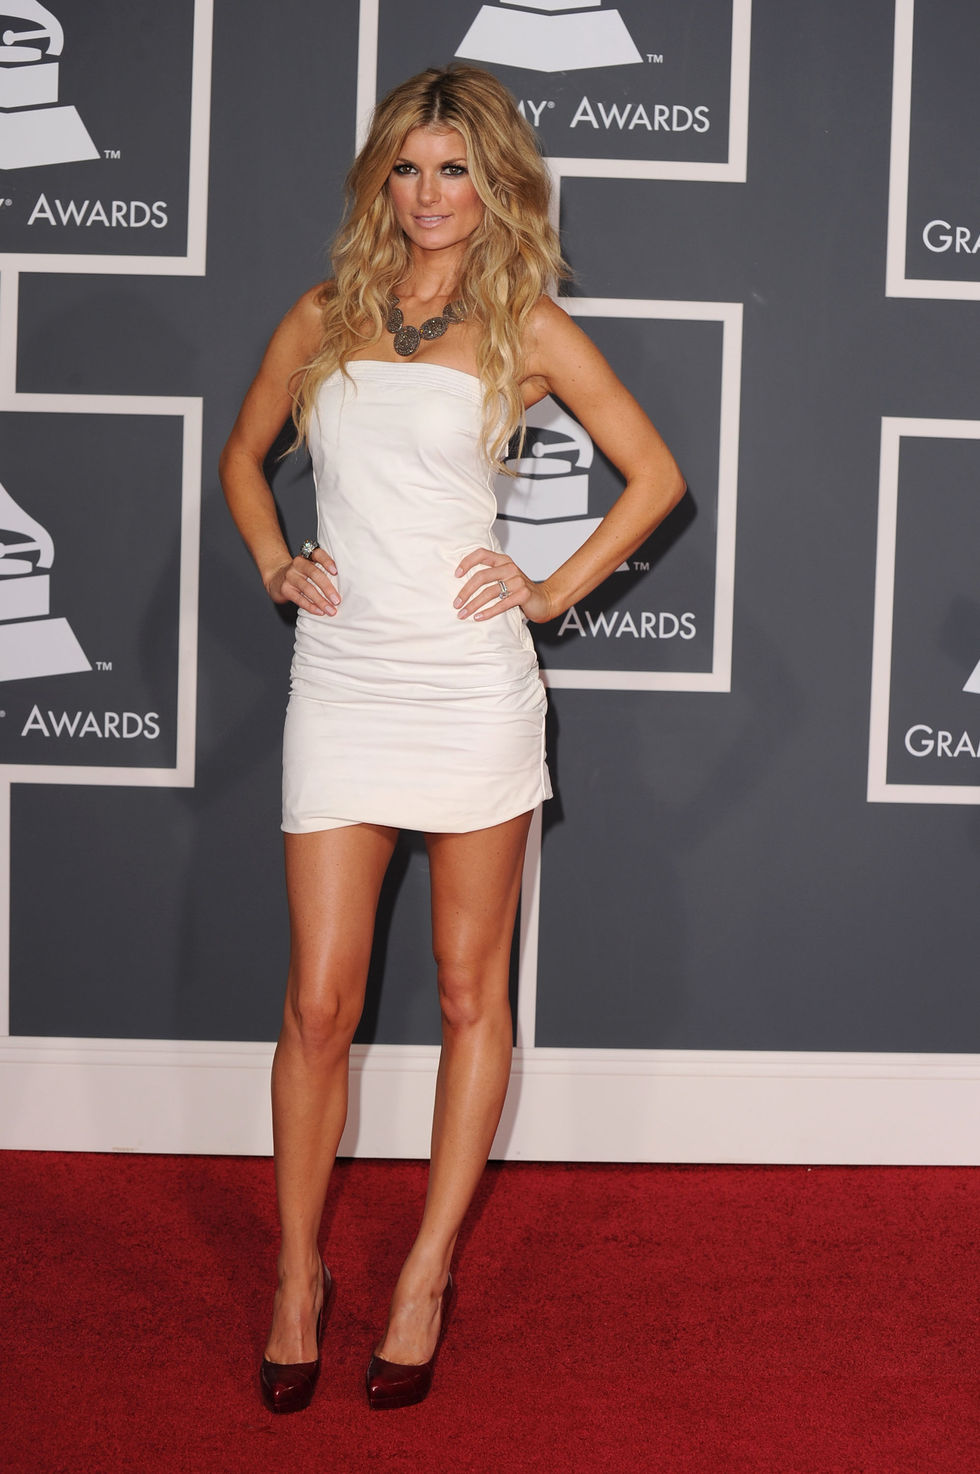 marisa-miller-52nd-annual-grammy-awards-in-los-angeles-01